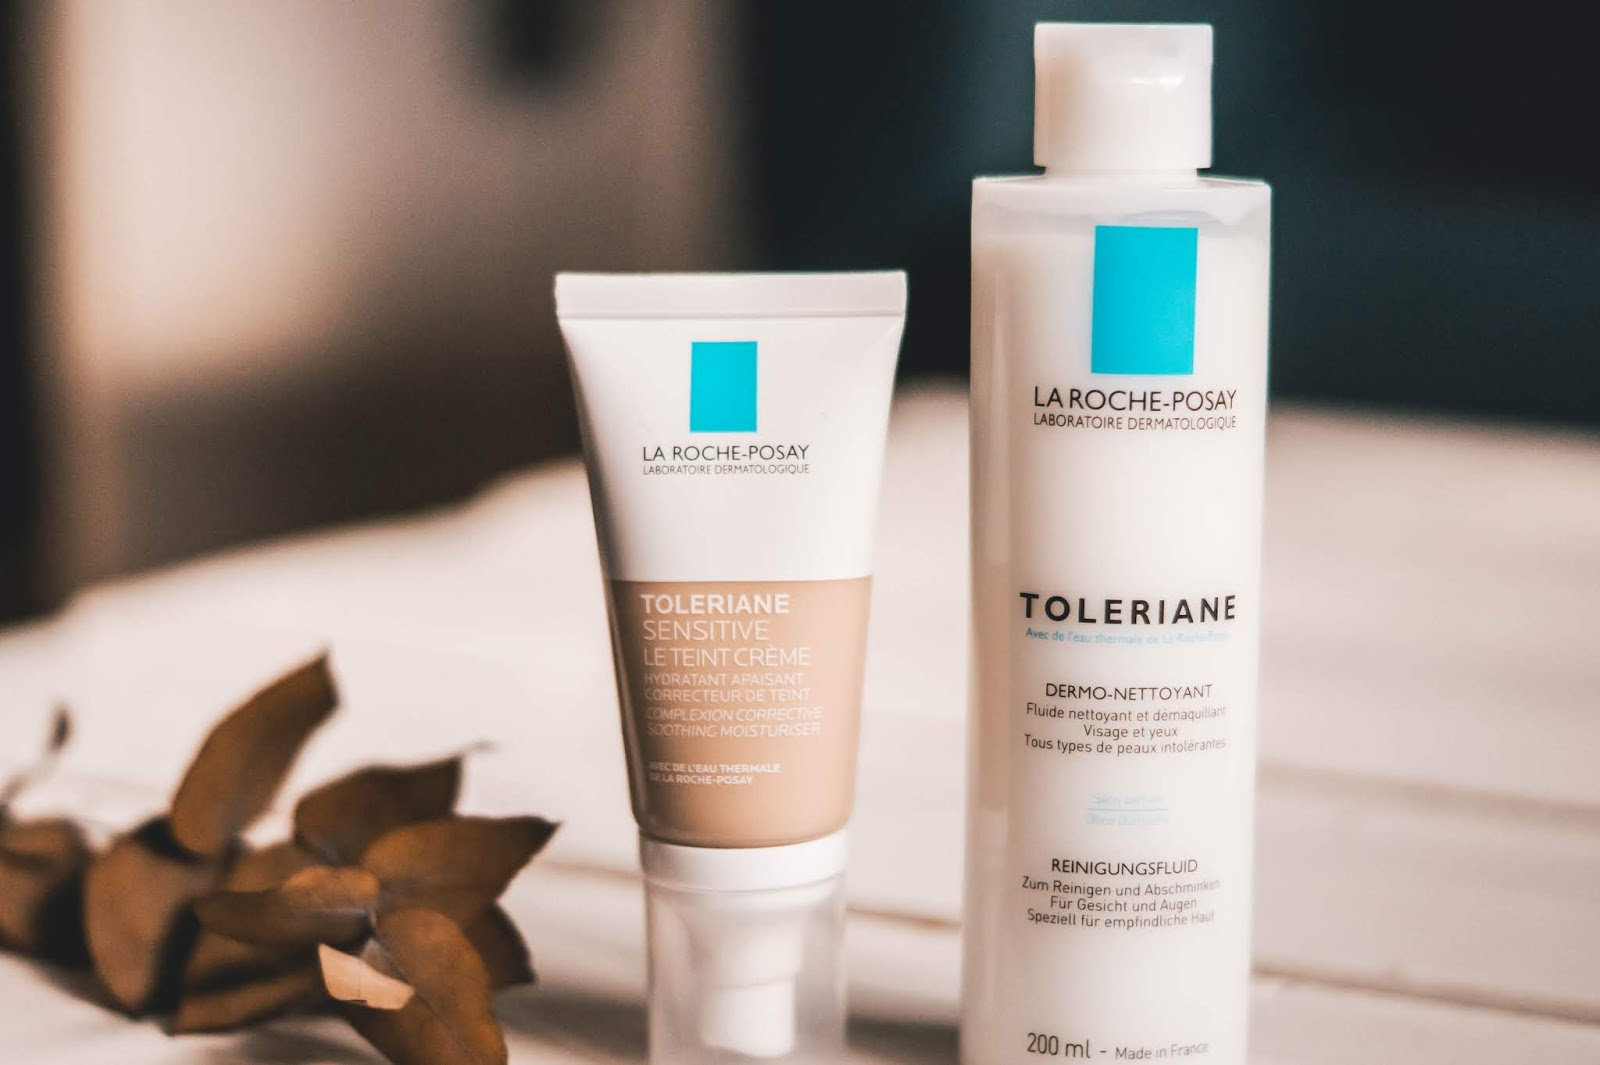 La Roche Posay sensitive avis